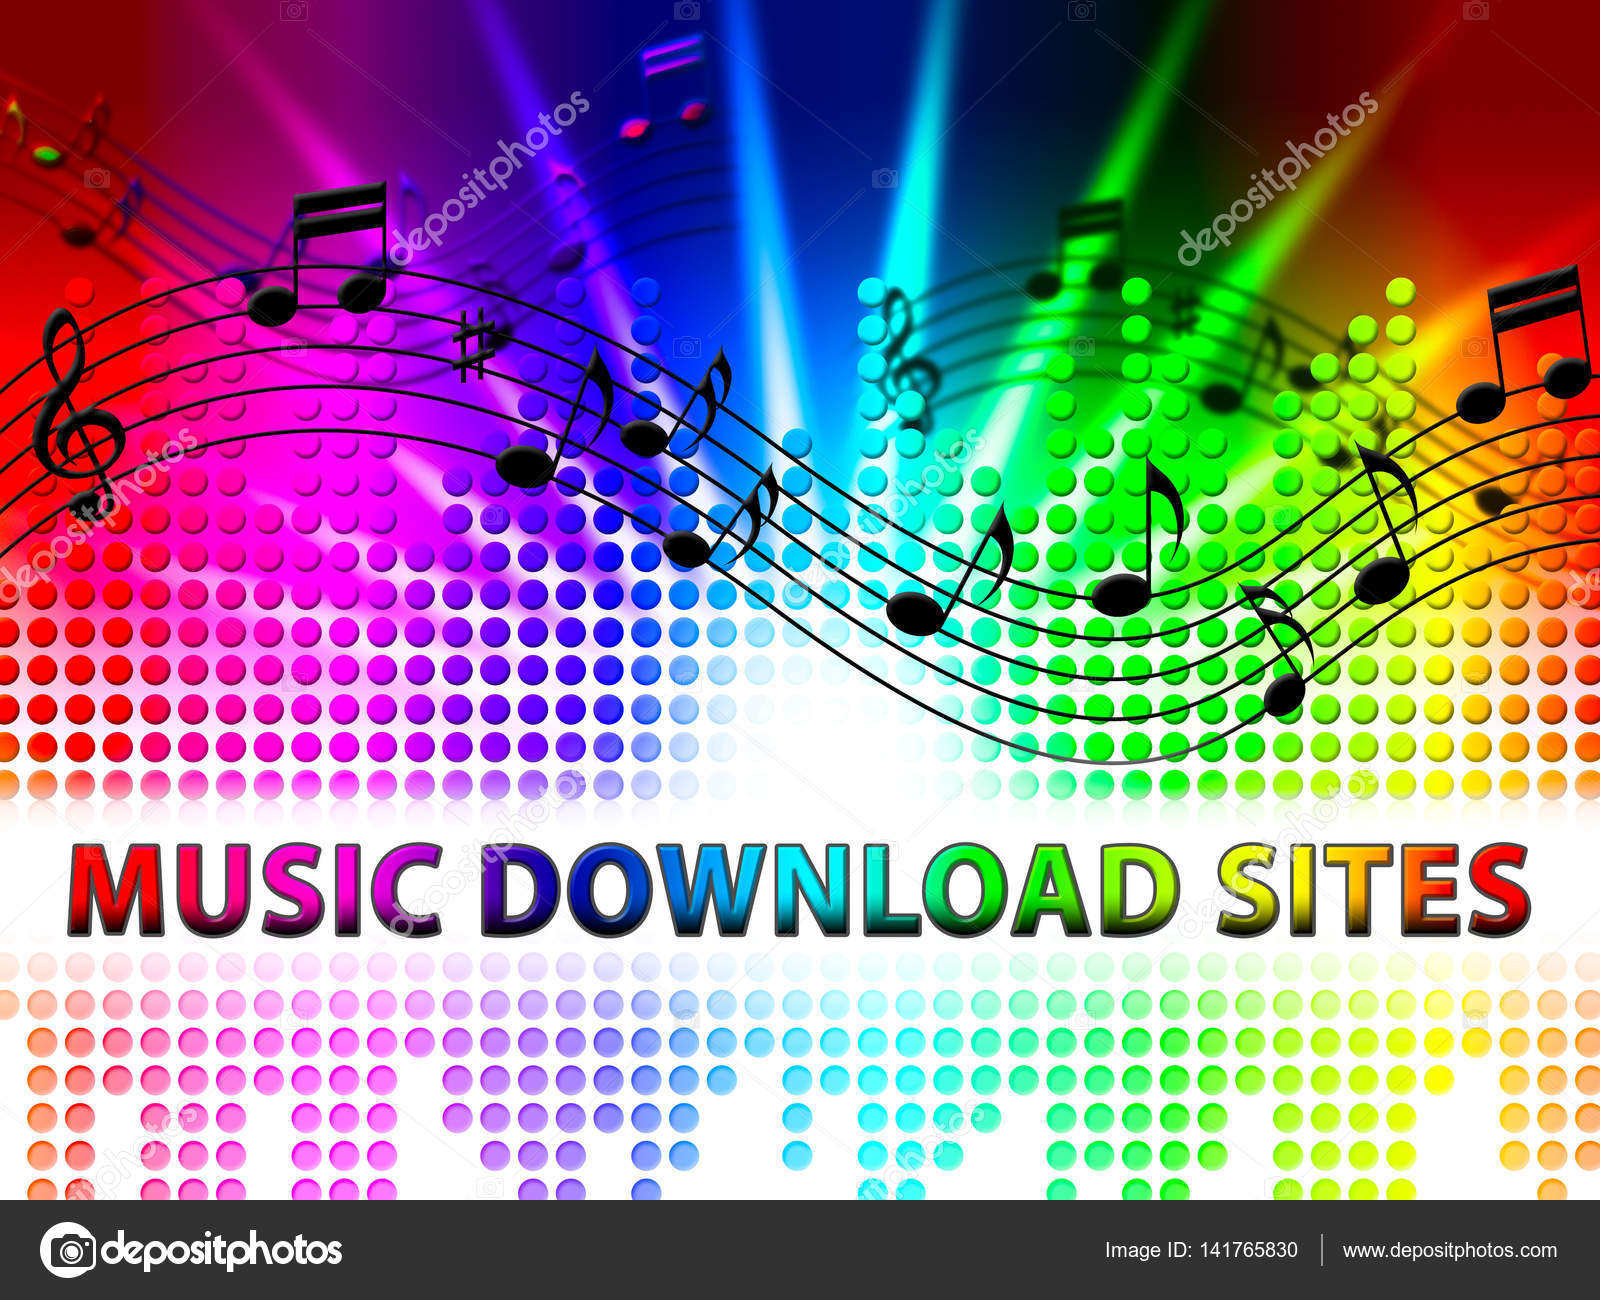 Soundtracks: a selection of sites